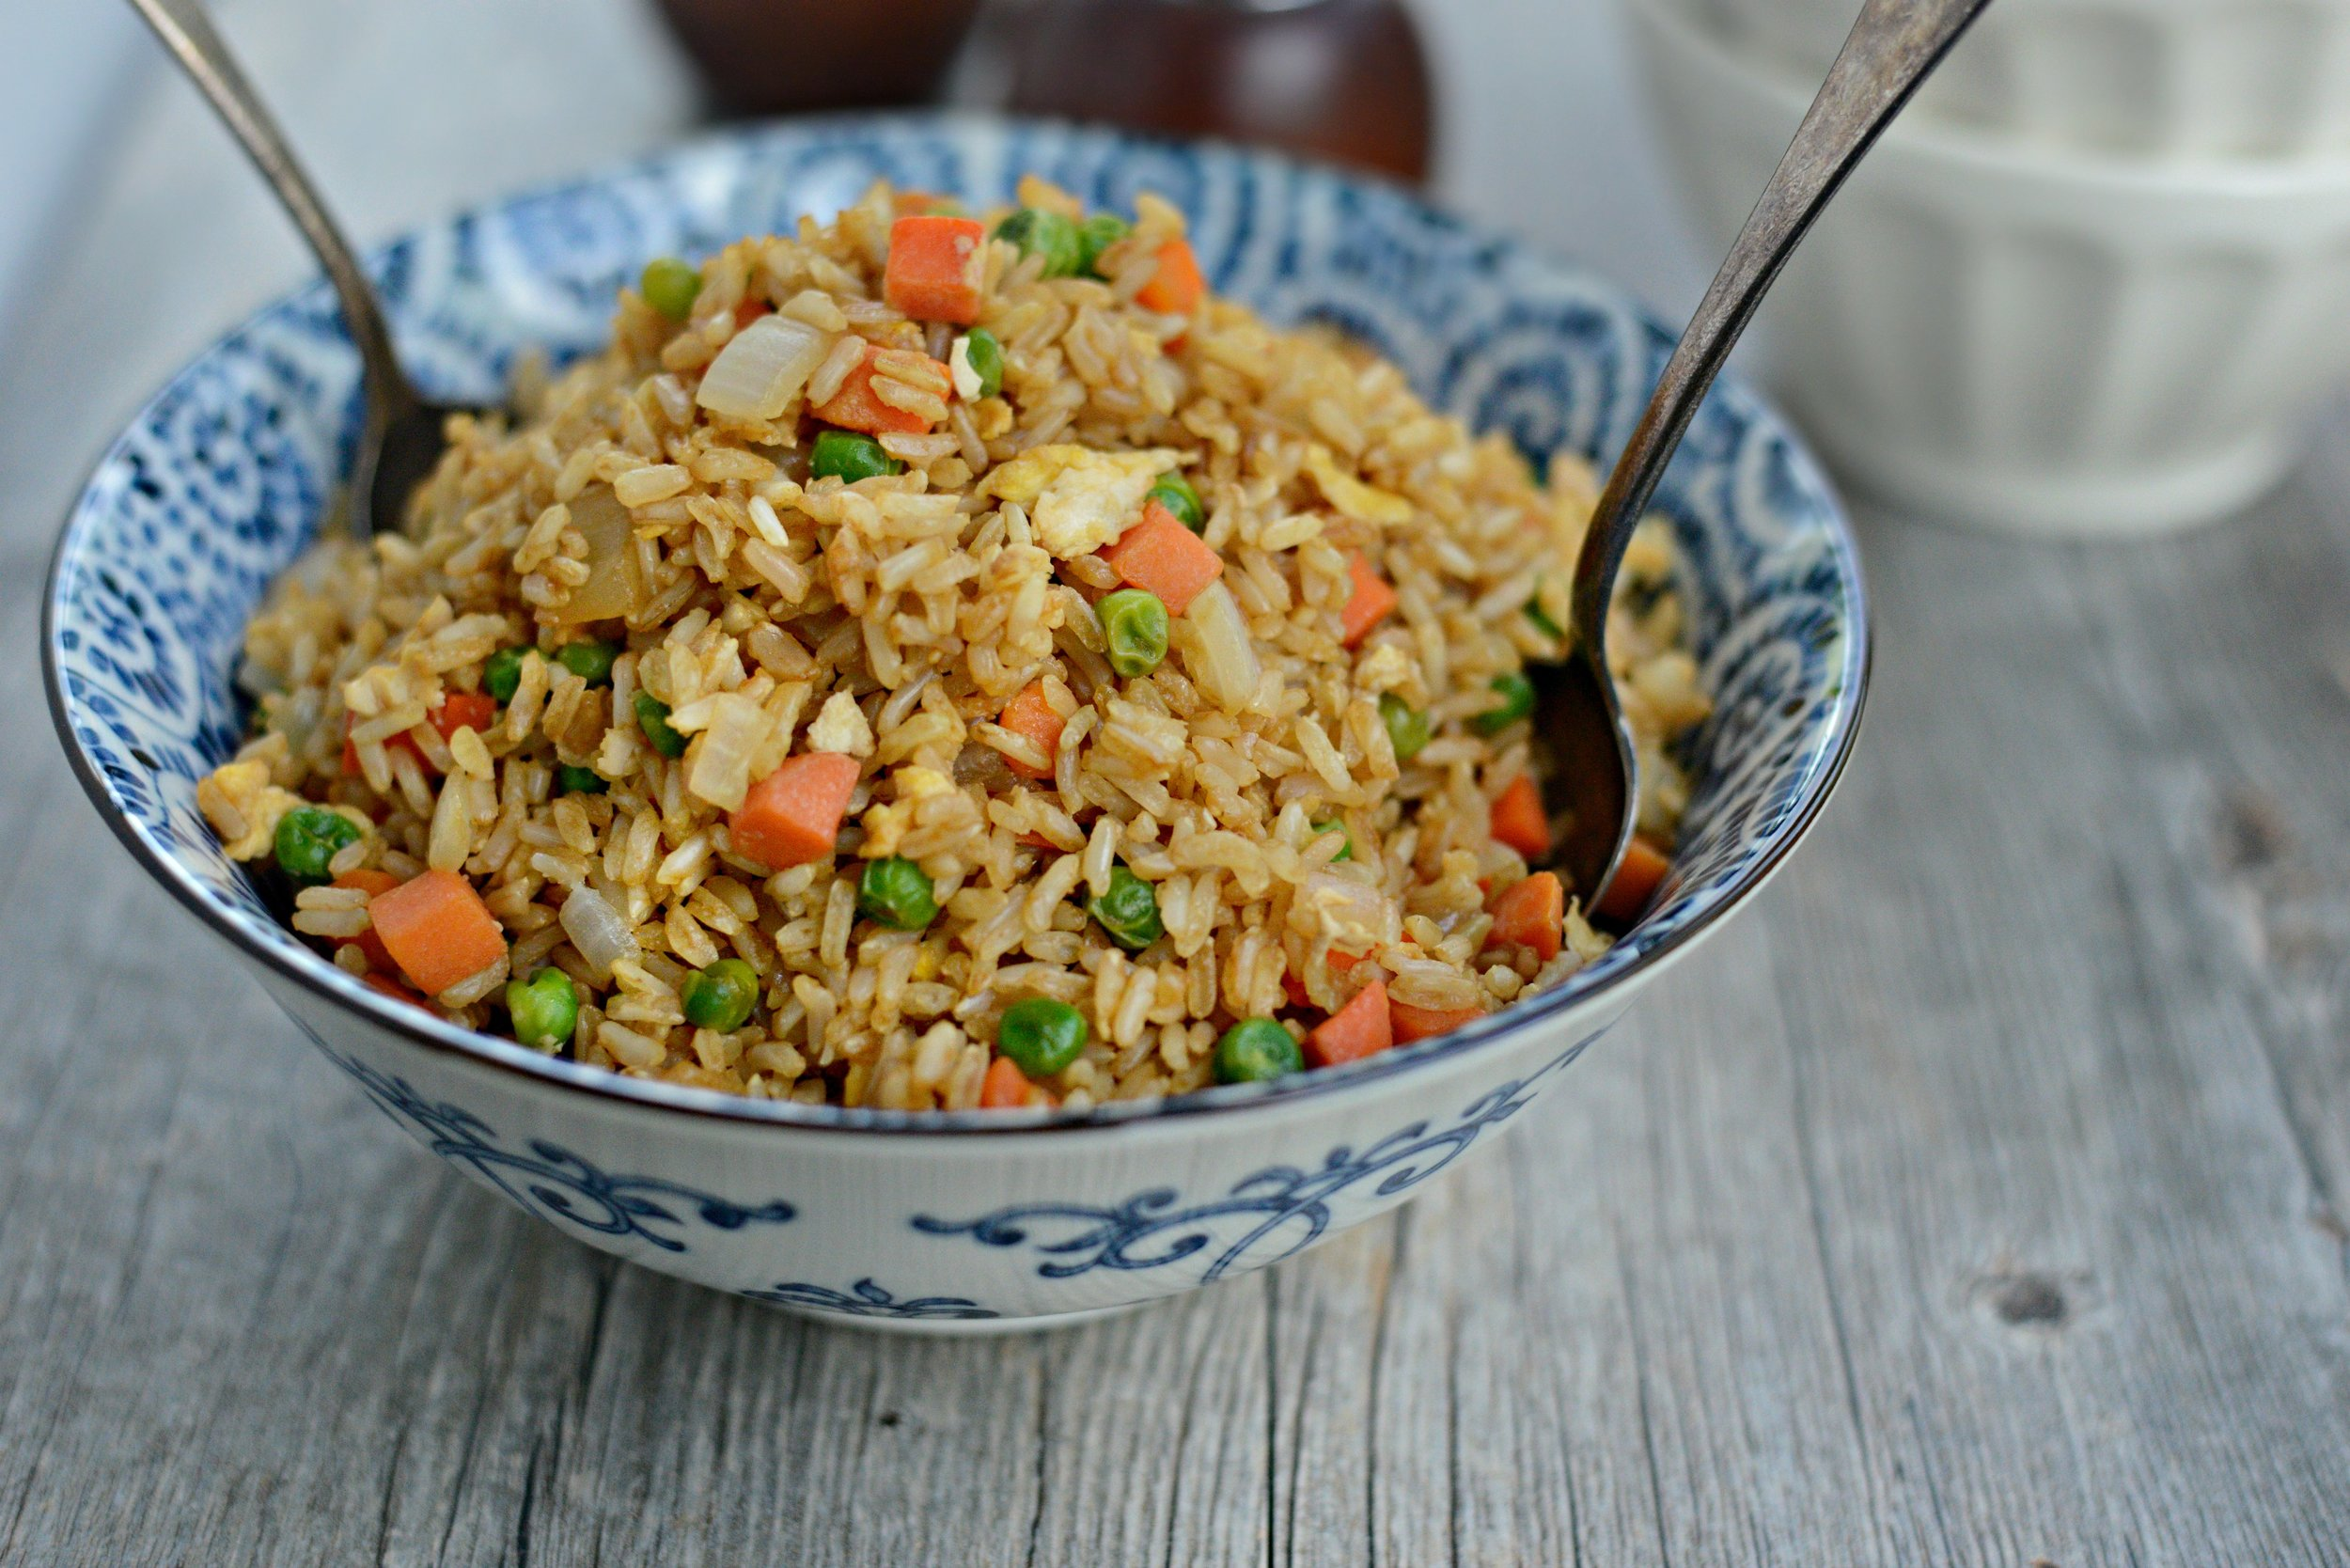 Enlightening Entrees! - Who says fried rice needs to be full of fat and unhealthy. Feel free to add even more of your favorite veggies to this recipe – Broccoli, long beans, red peppers all work great. The more the merrier! Enjoy!